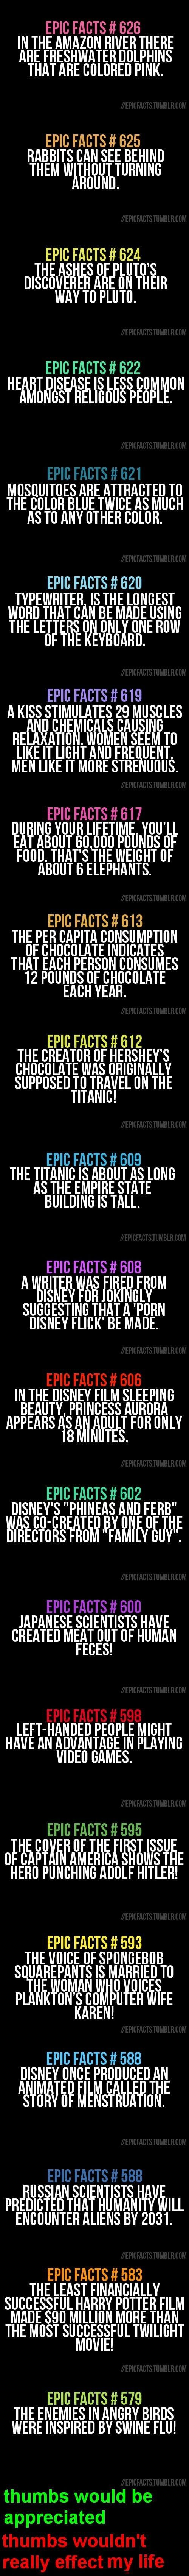 Because one day I will mention these useless facts to people